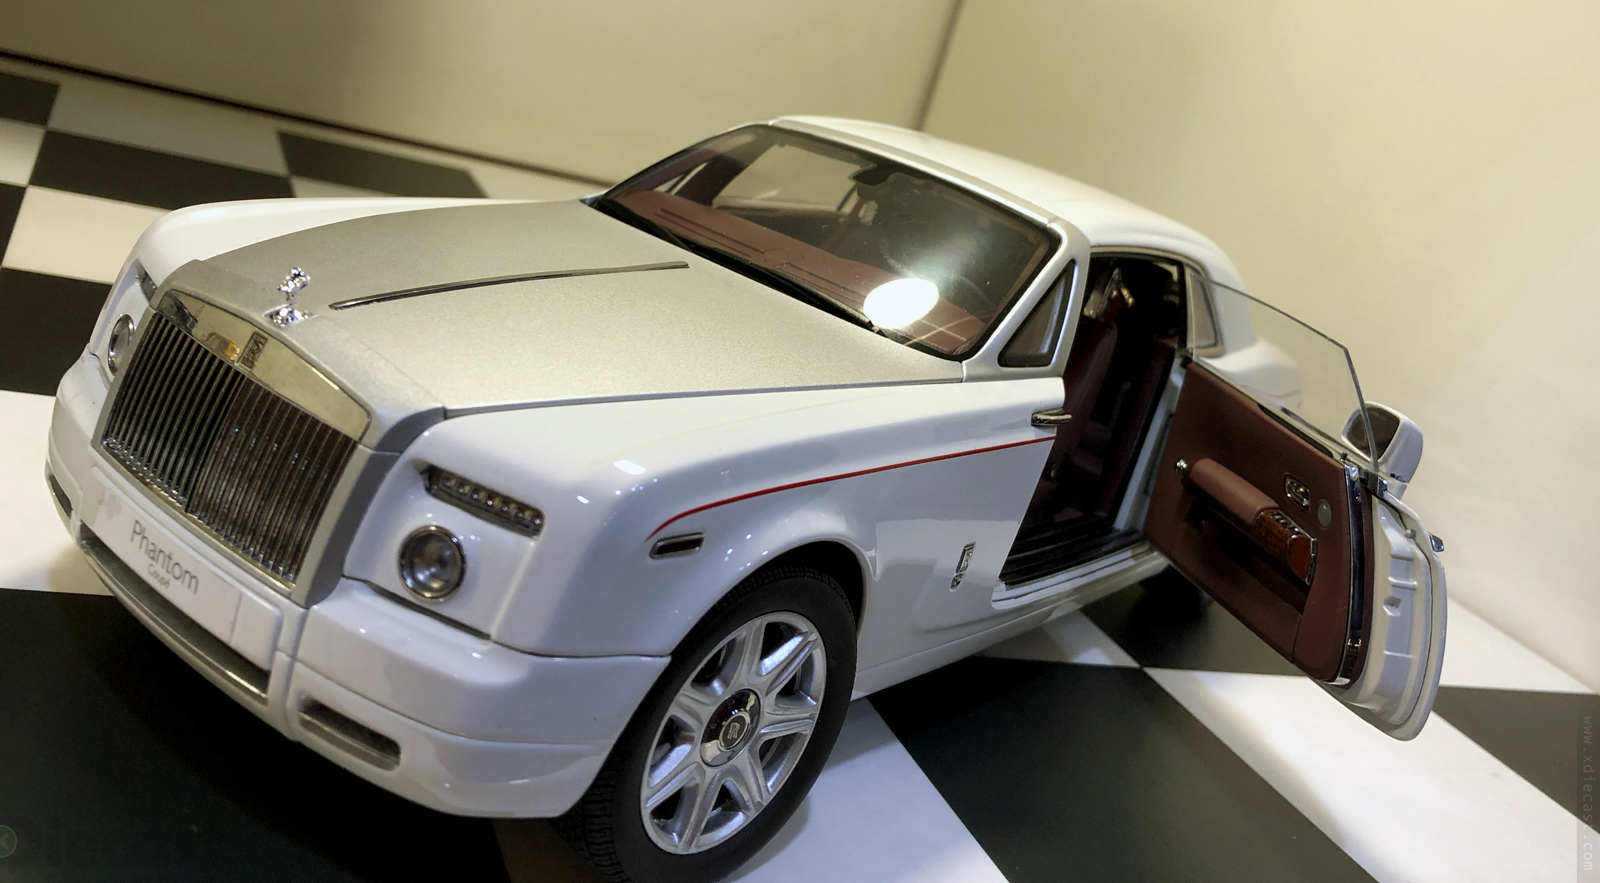 Kyosho Diecast Rolls Royce Phantom Coupe 1 18 English White Color Cars Trucks Vans Contemporary Manufacture